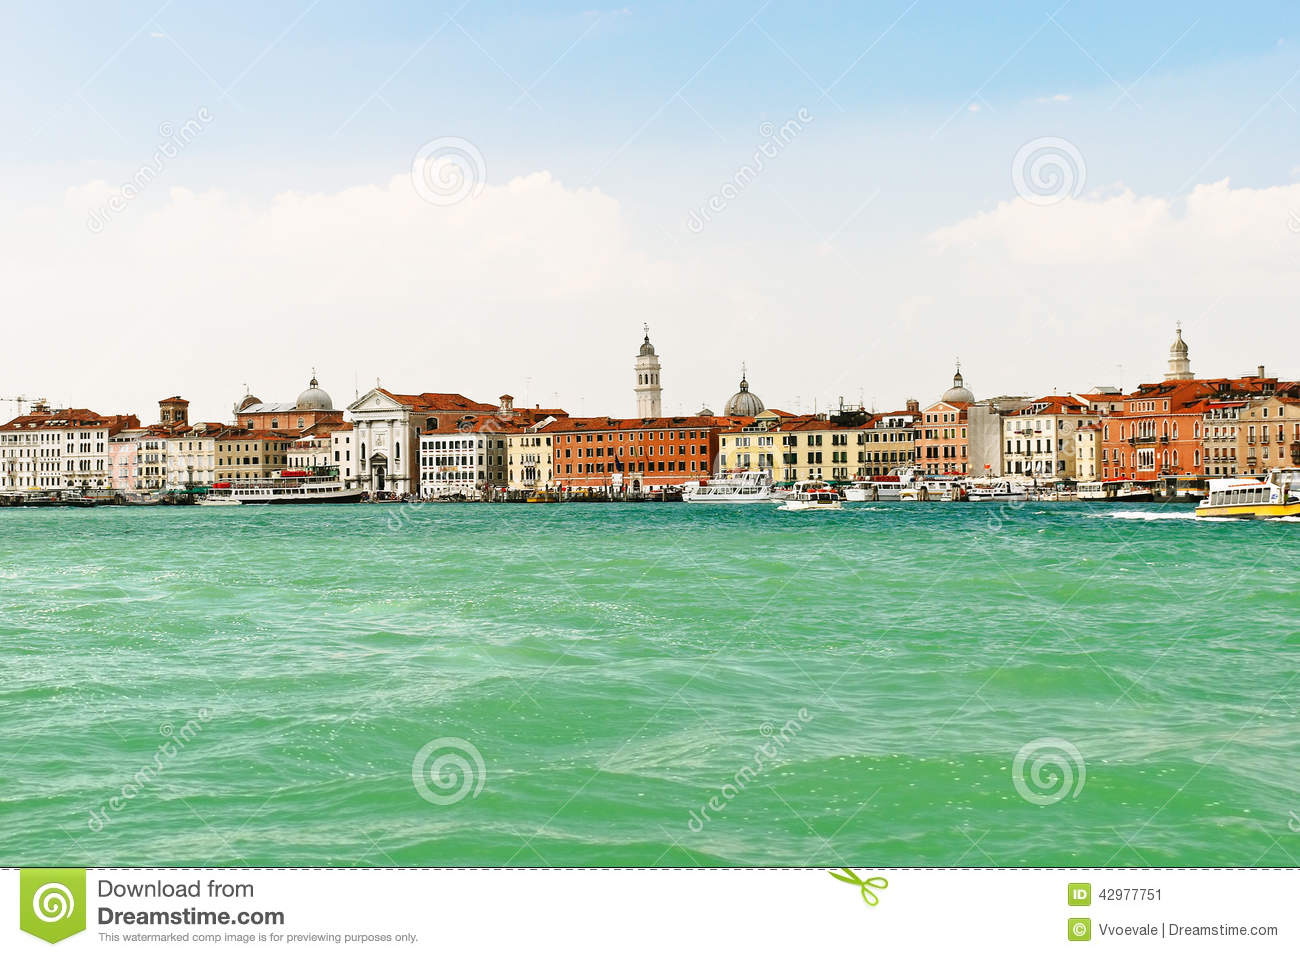 venice a lagoon city essay This excursion aims to see a different side of venice and get away from the hustle and bustle of the city explore the venice lagoon by bike tour departs.